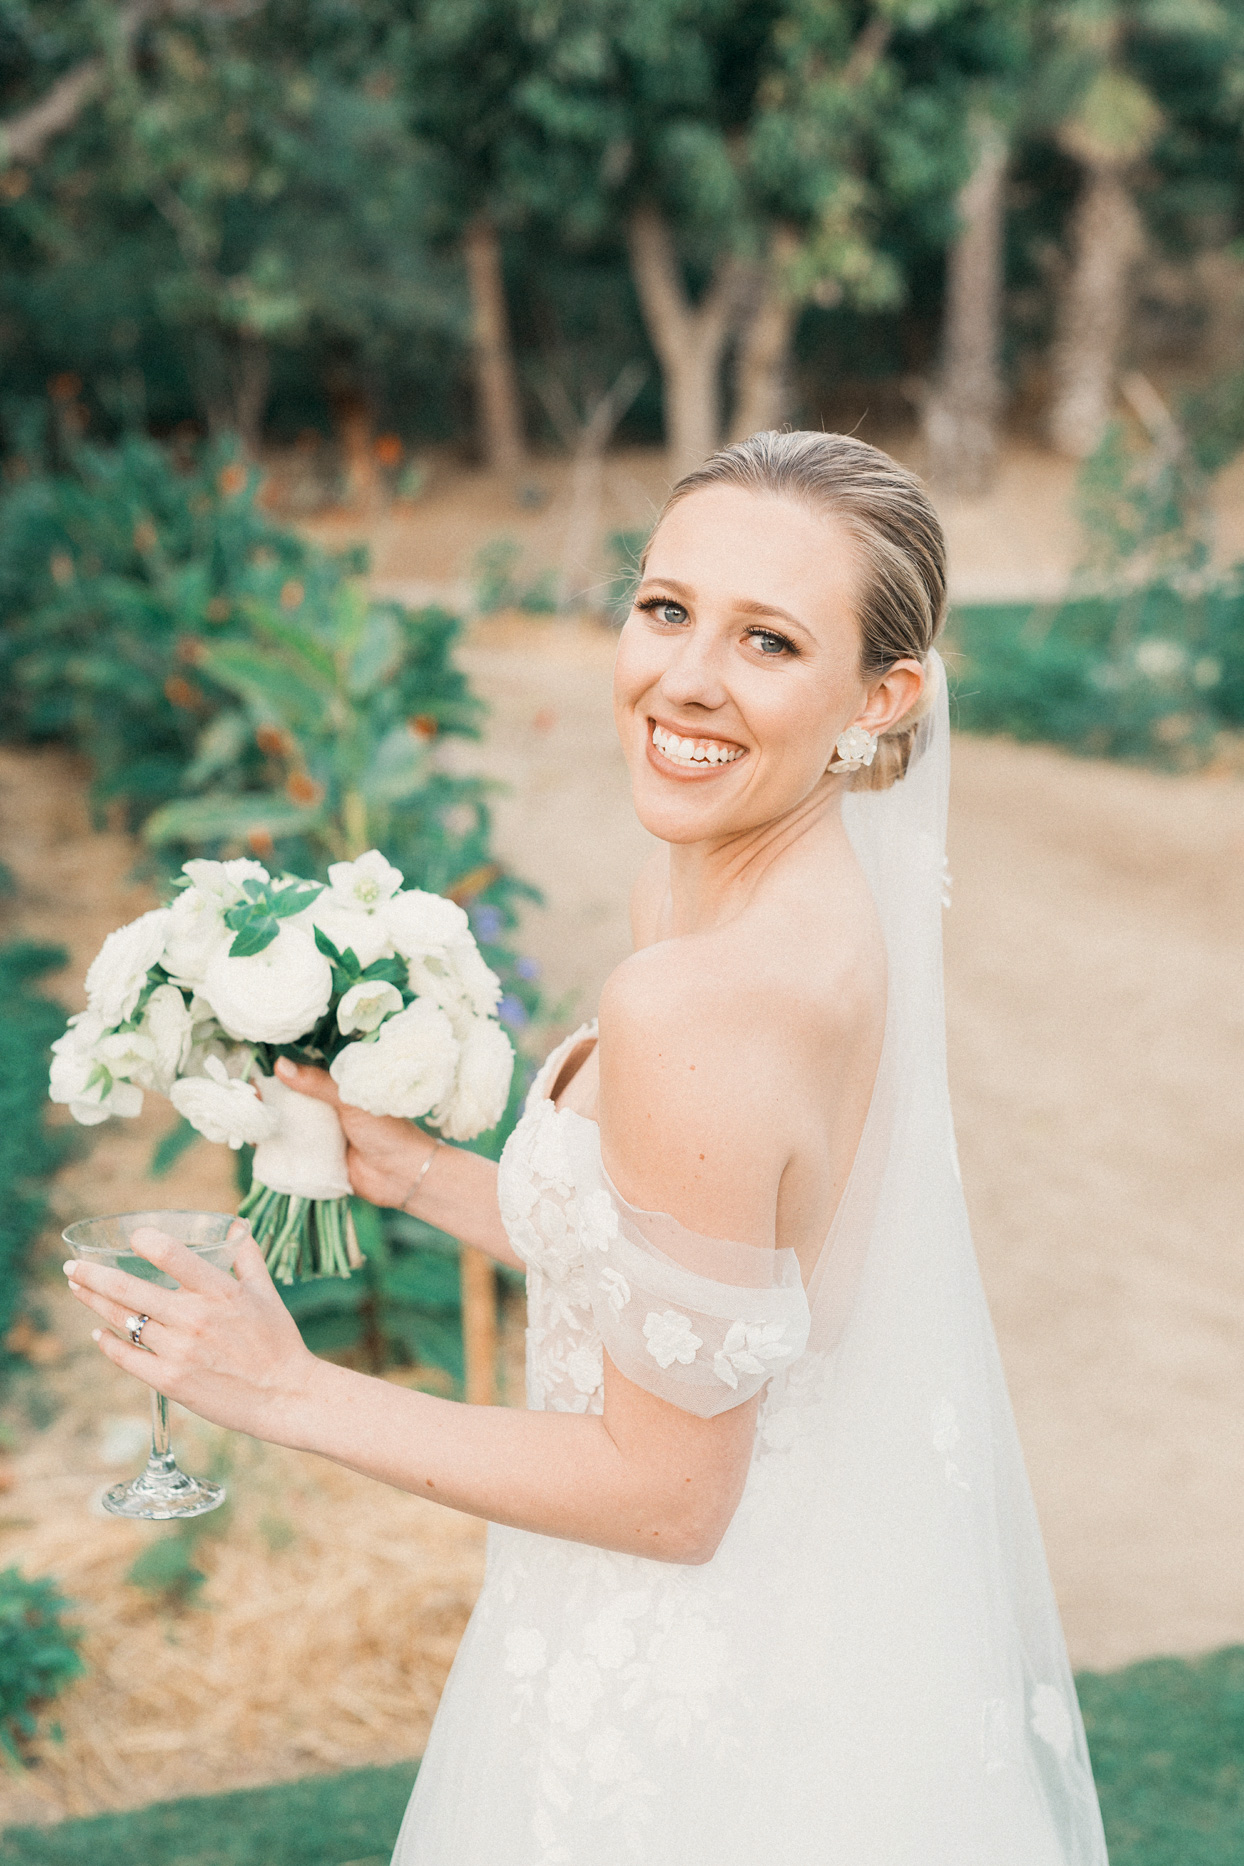 bride in white dress holding champagne and wedding flowers